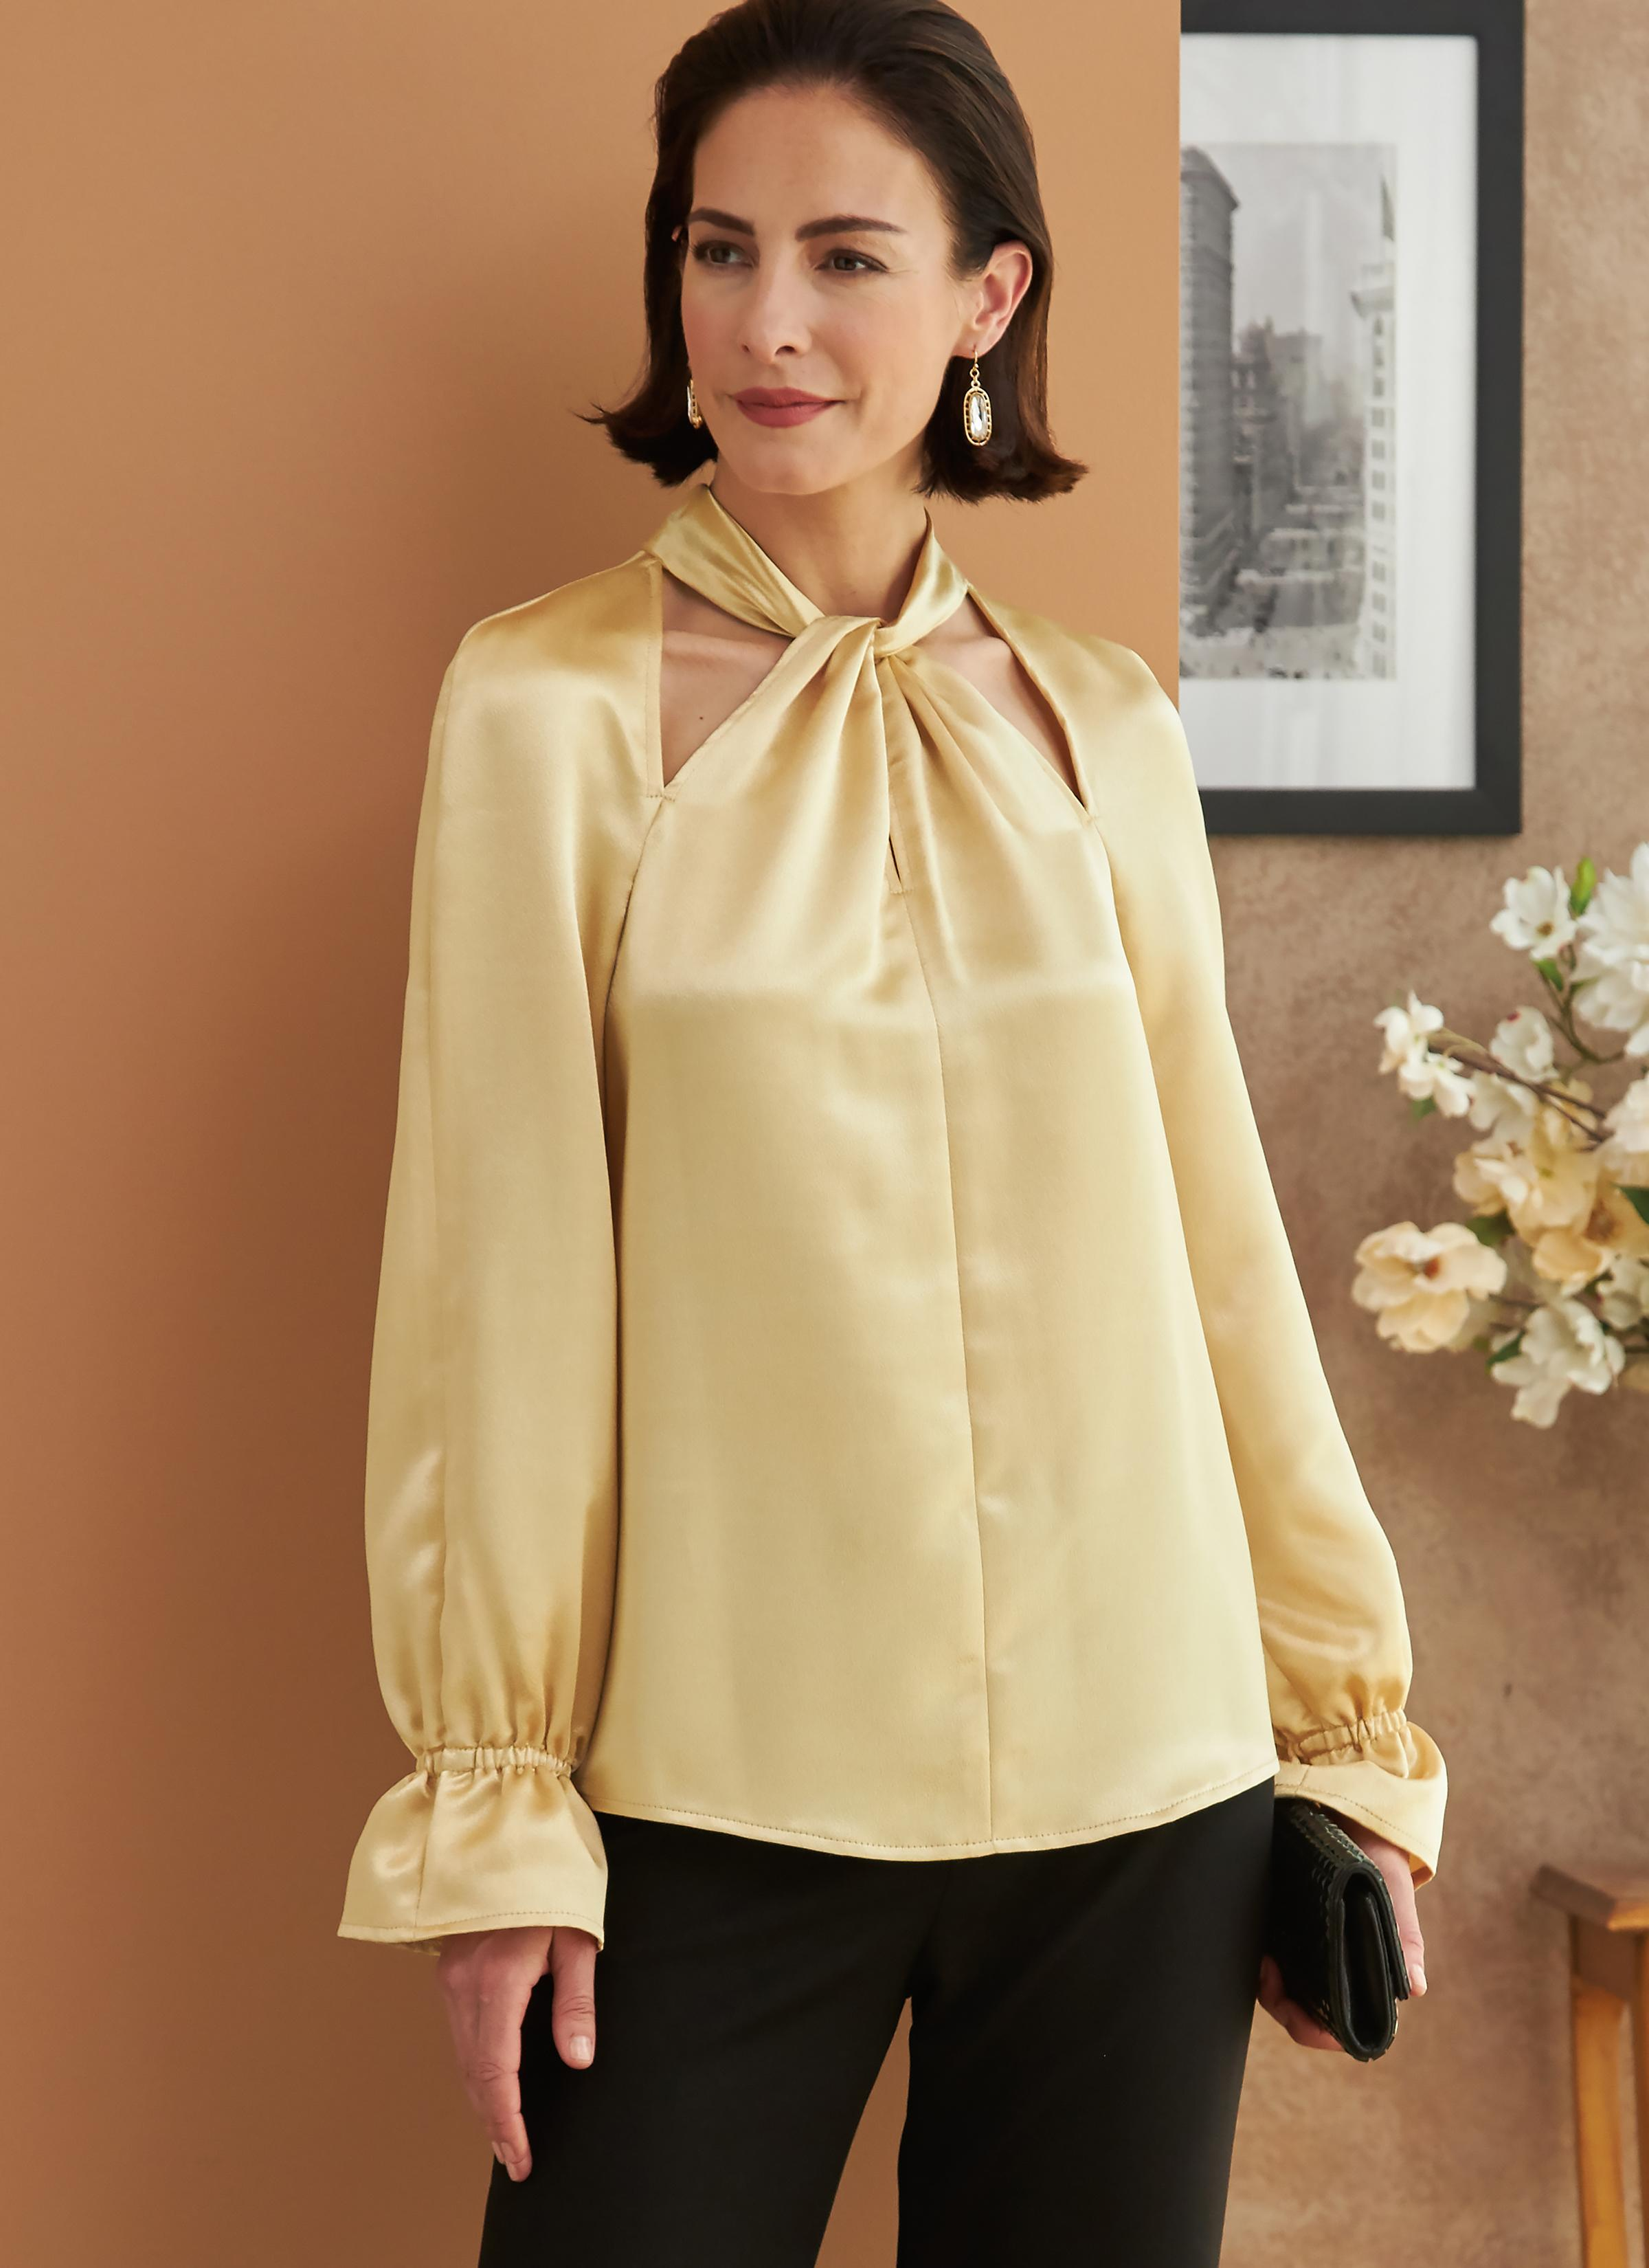 Butterick B6713 Misses' Top